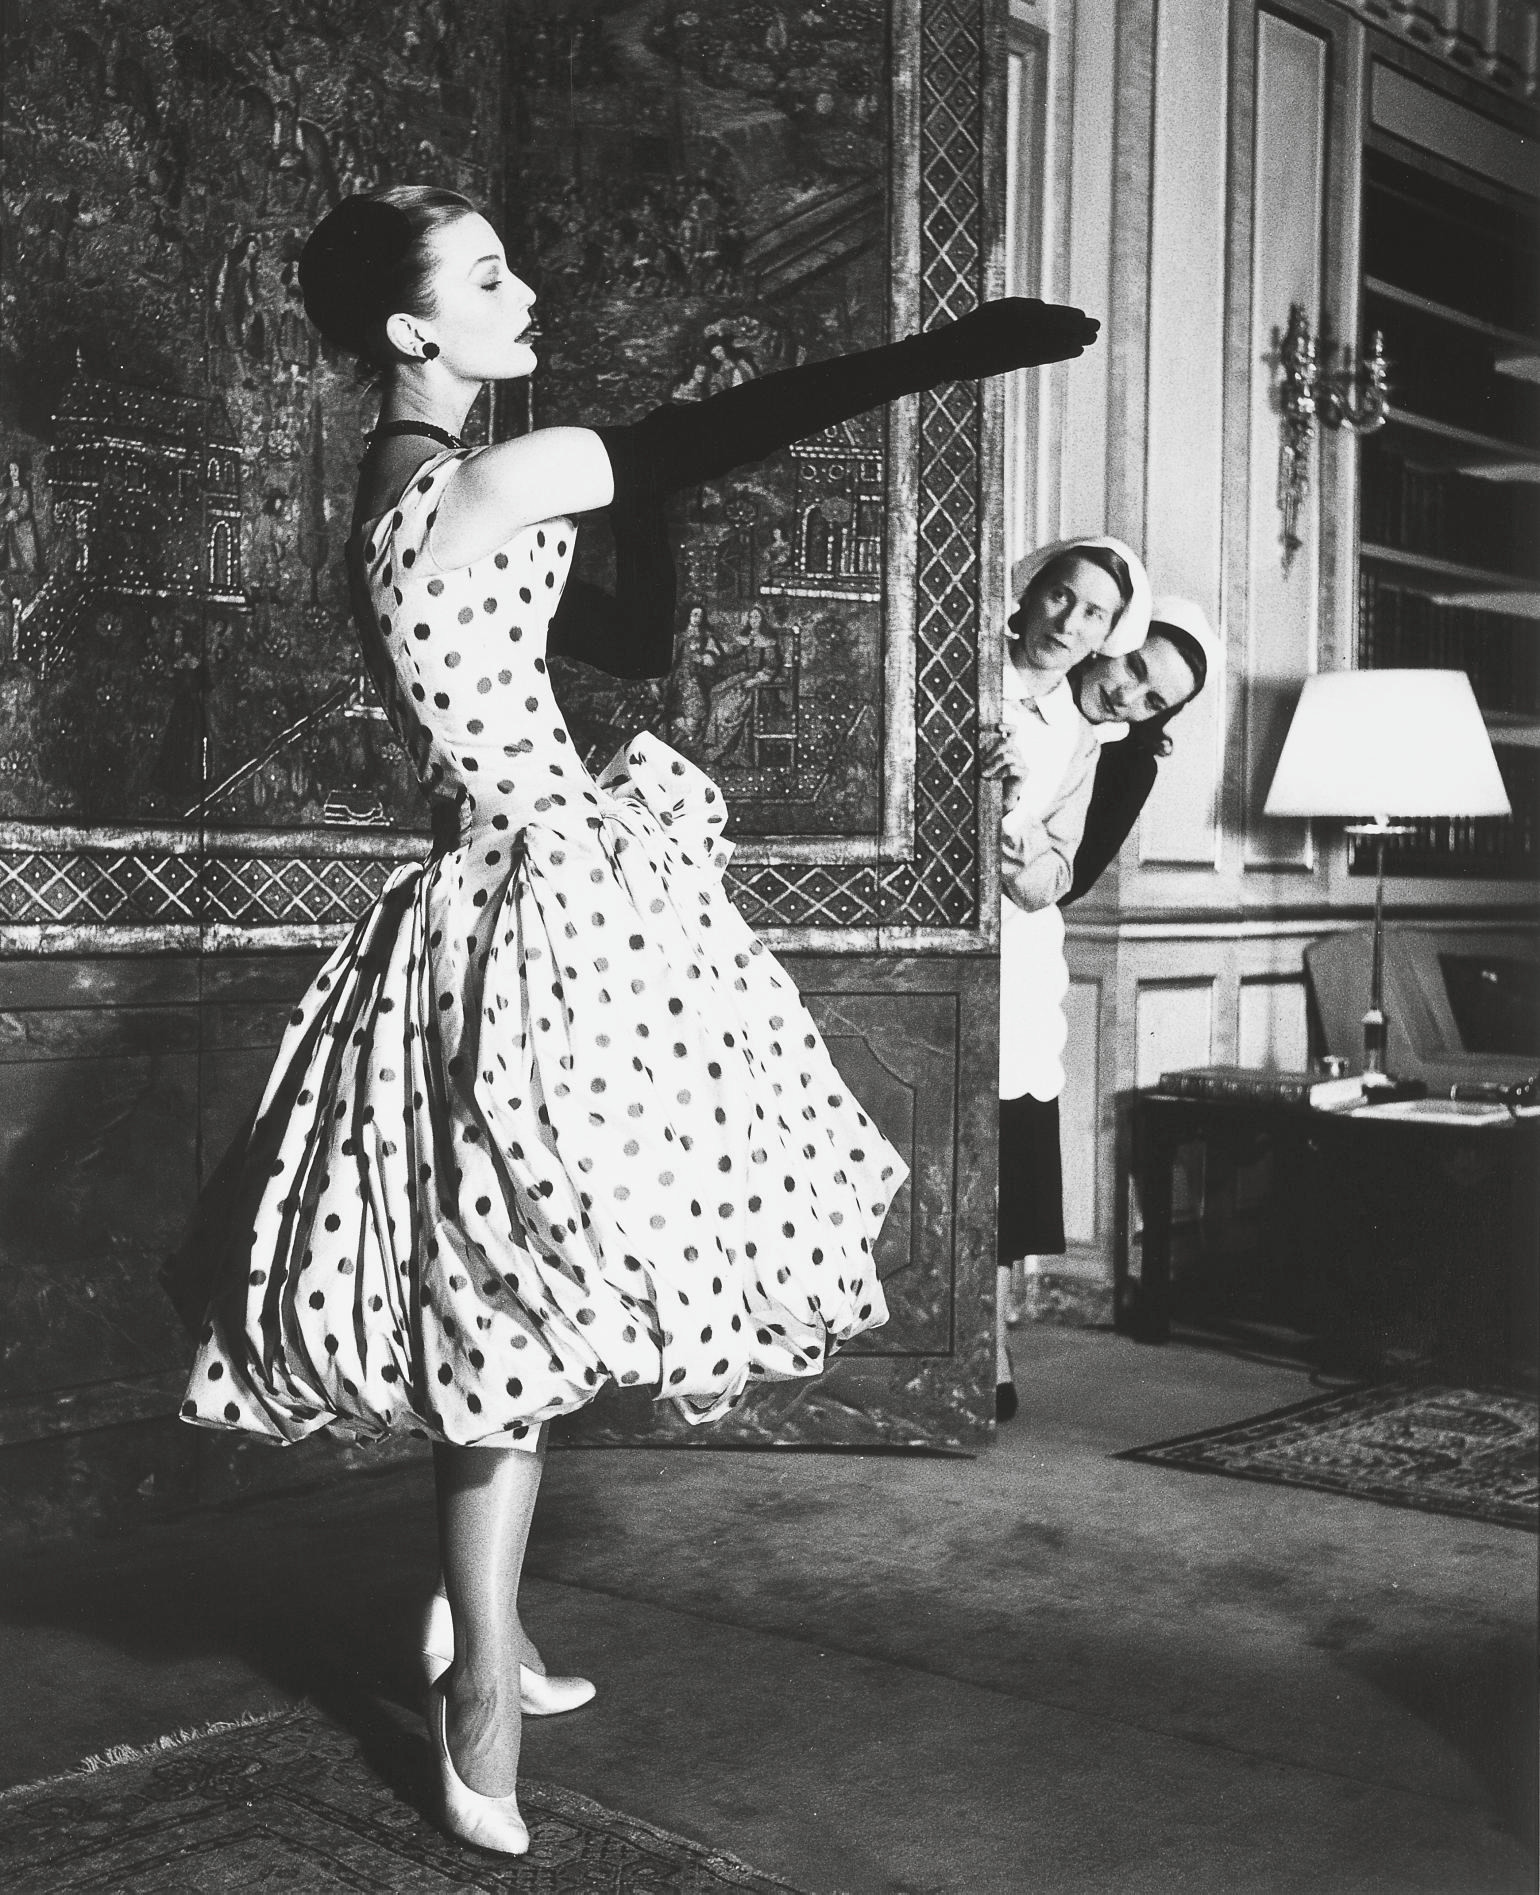 Mary Jane Russell in Dior Dress, Paris, 1950